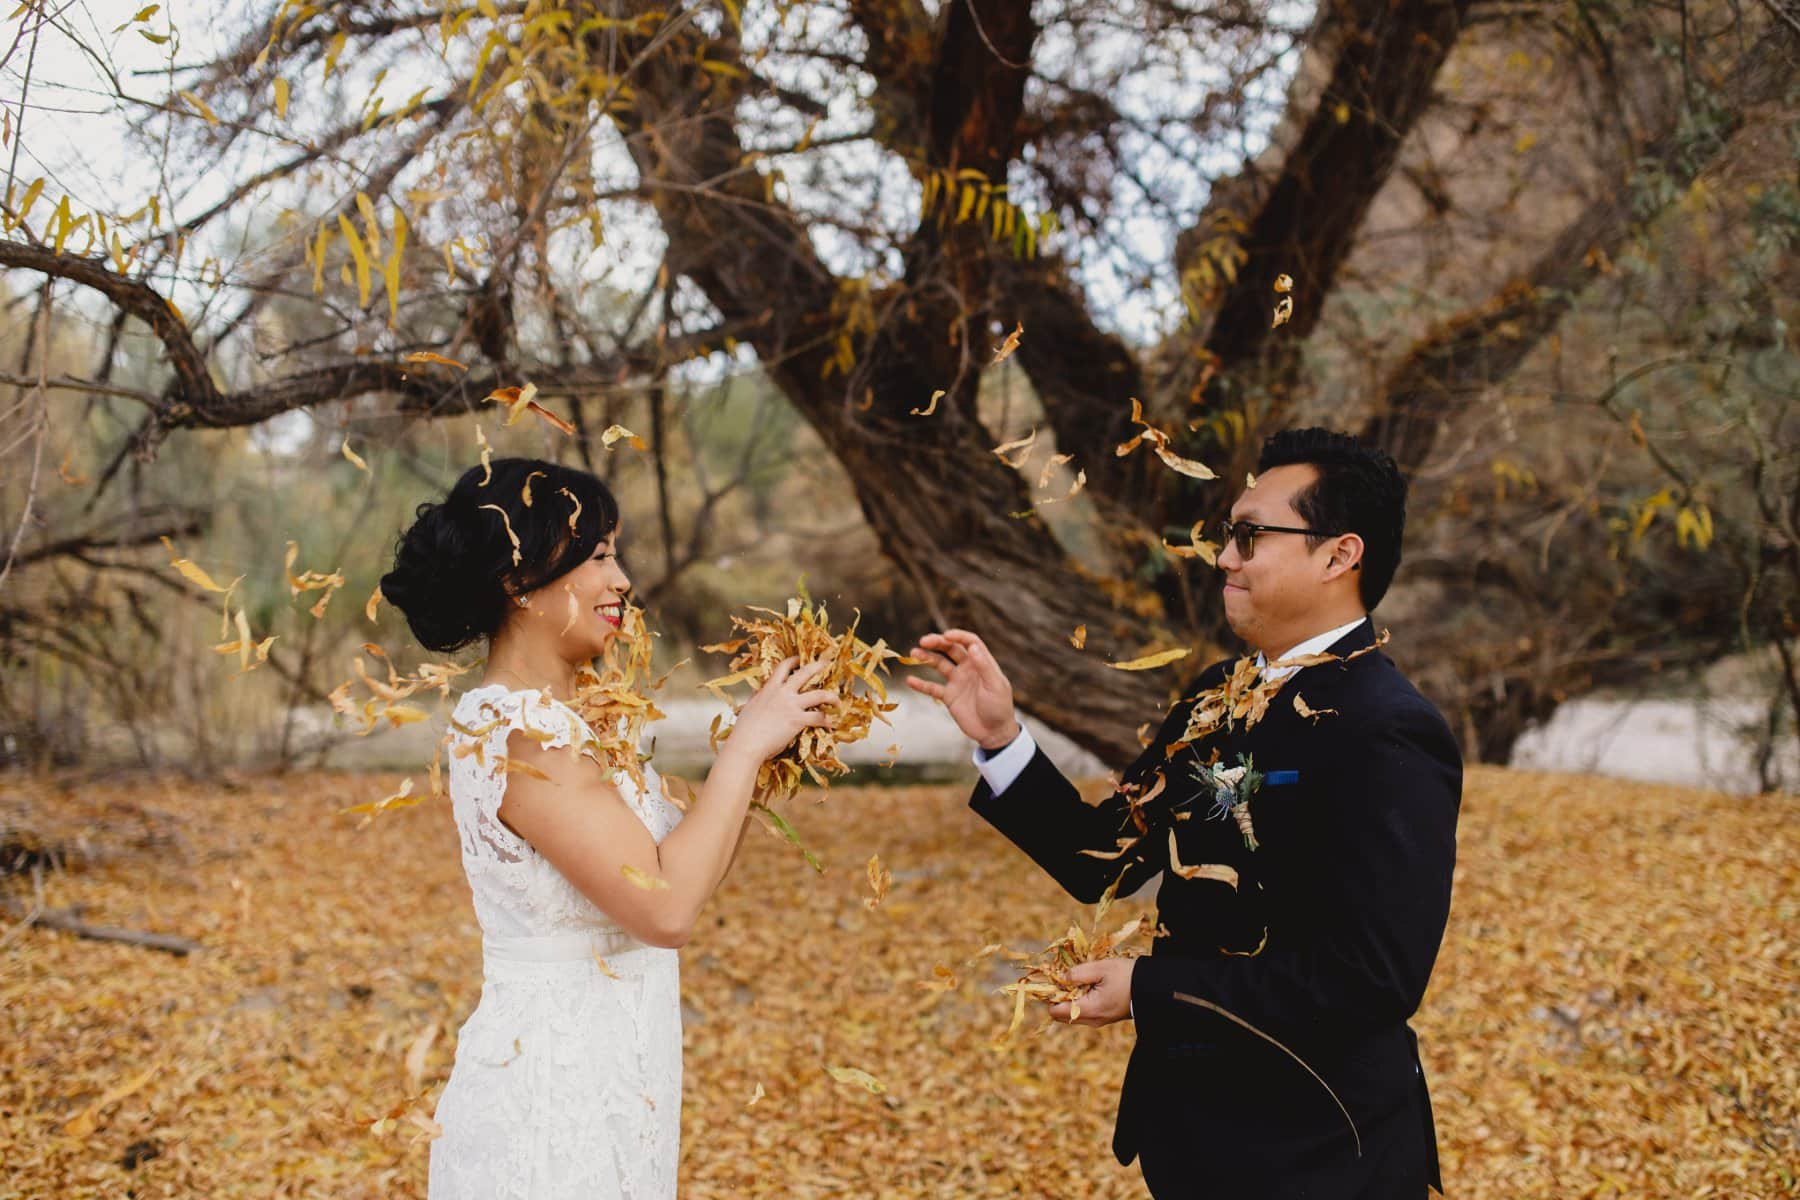 bride and groom tossing leaves at each other Arizona outdoor wedding location